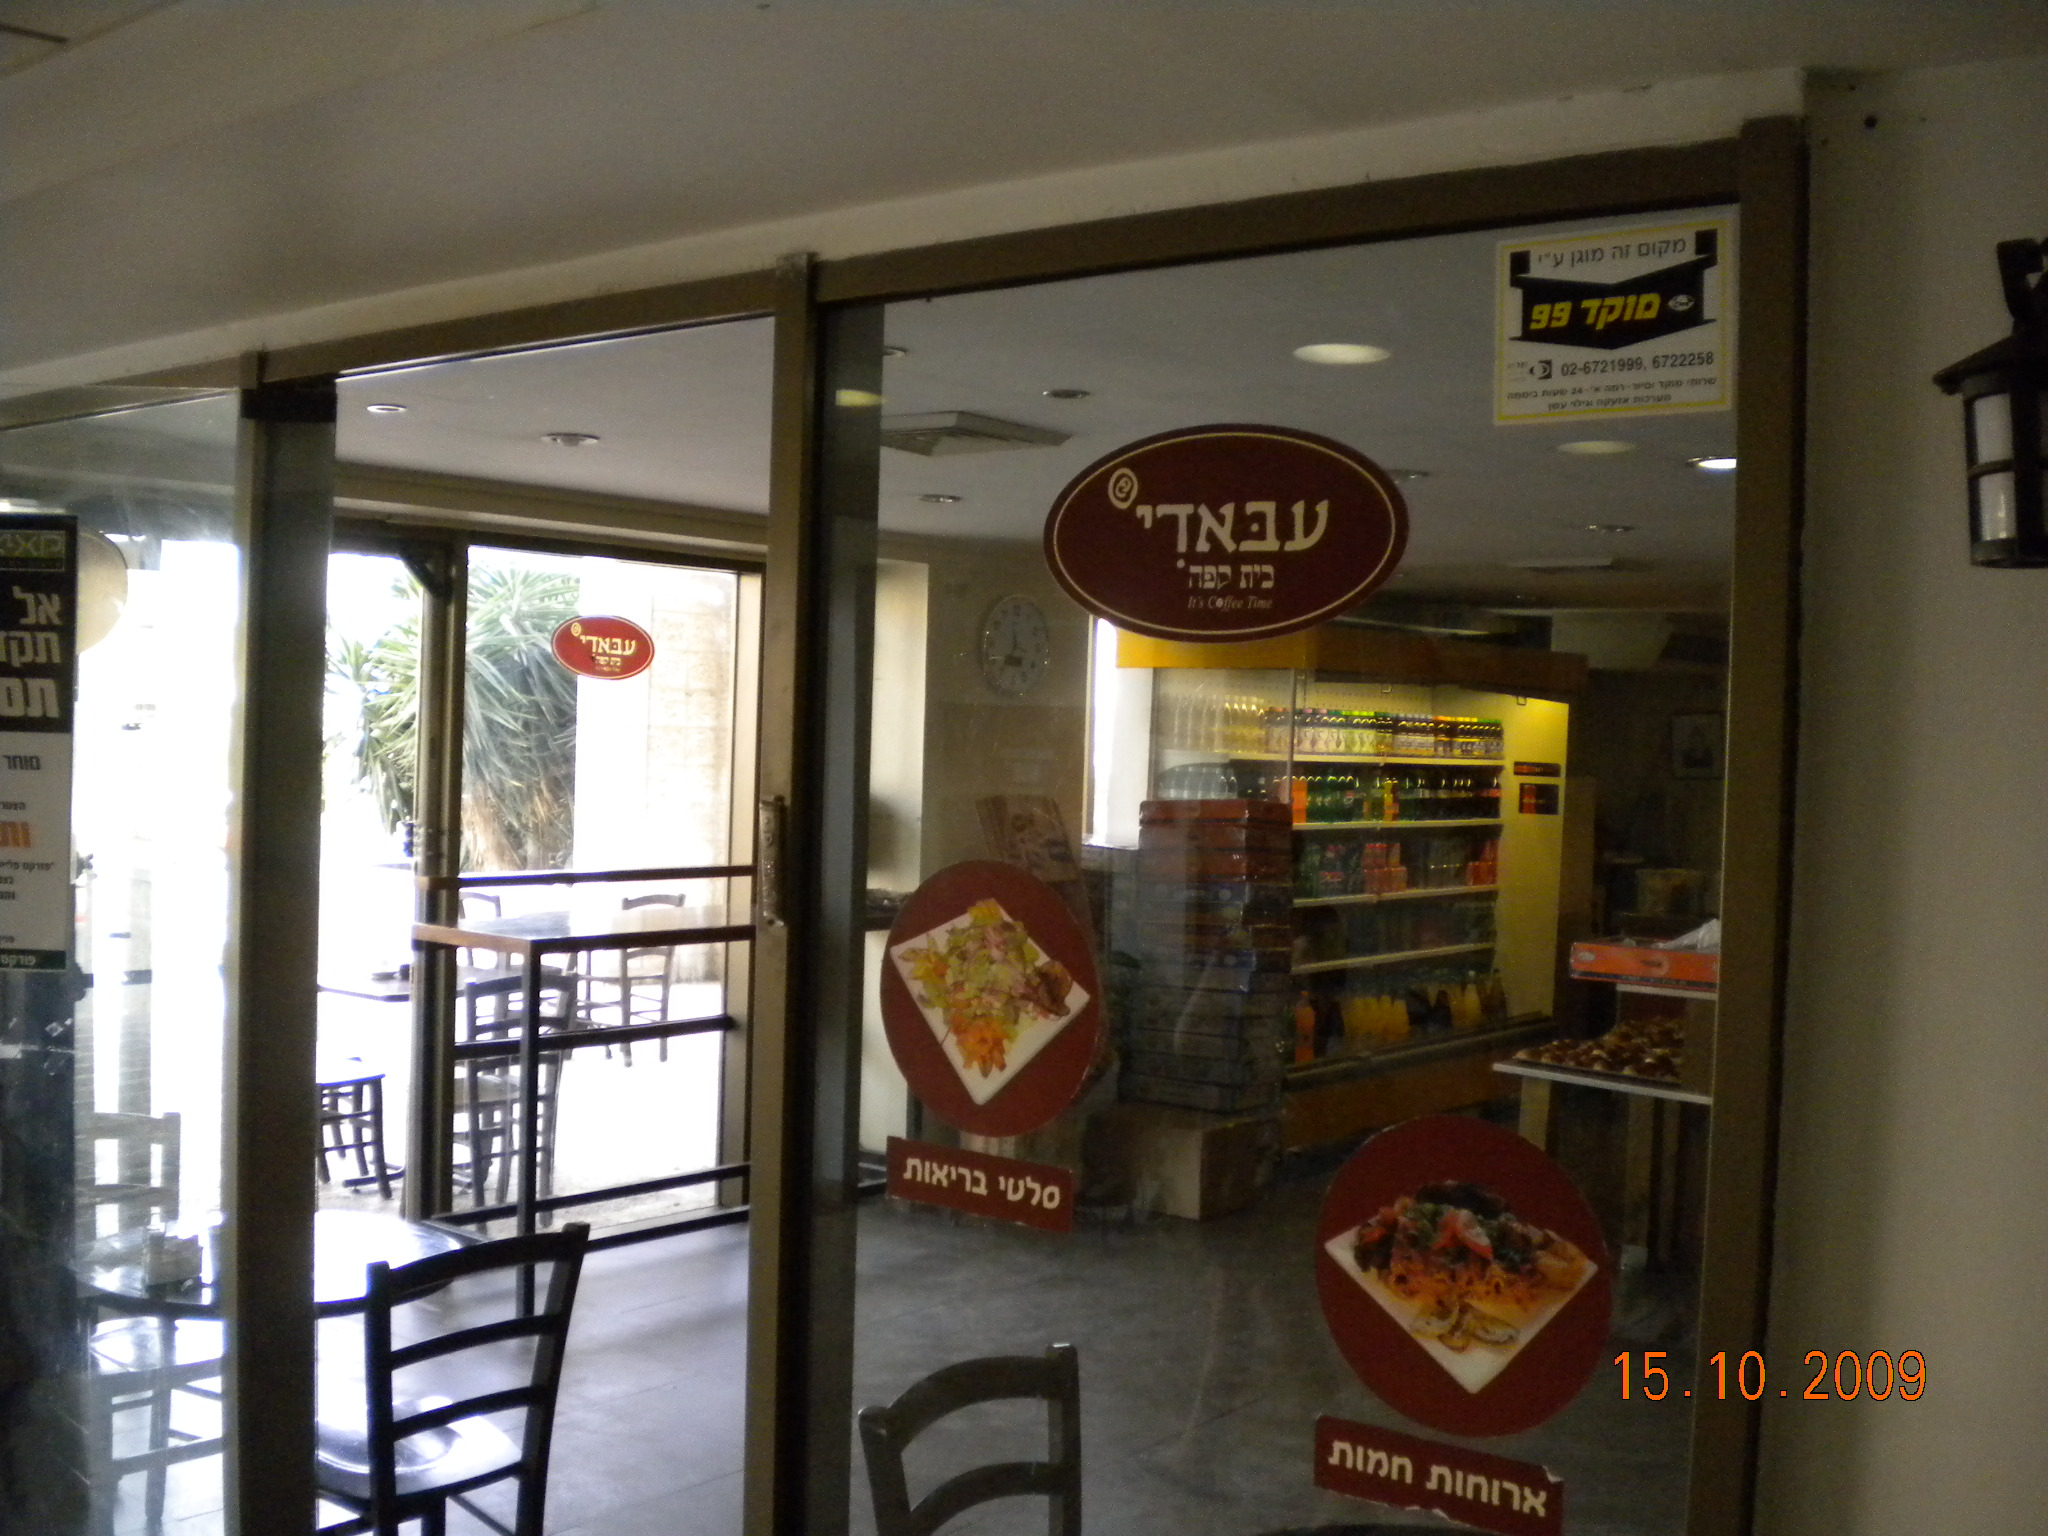 Outside view of Abadi dairy cafe, 3rd floor of building